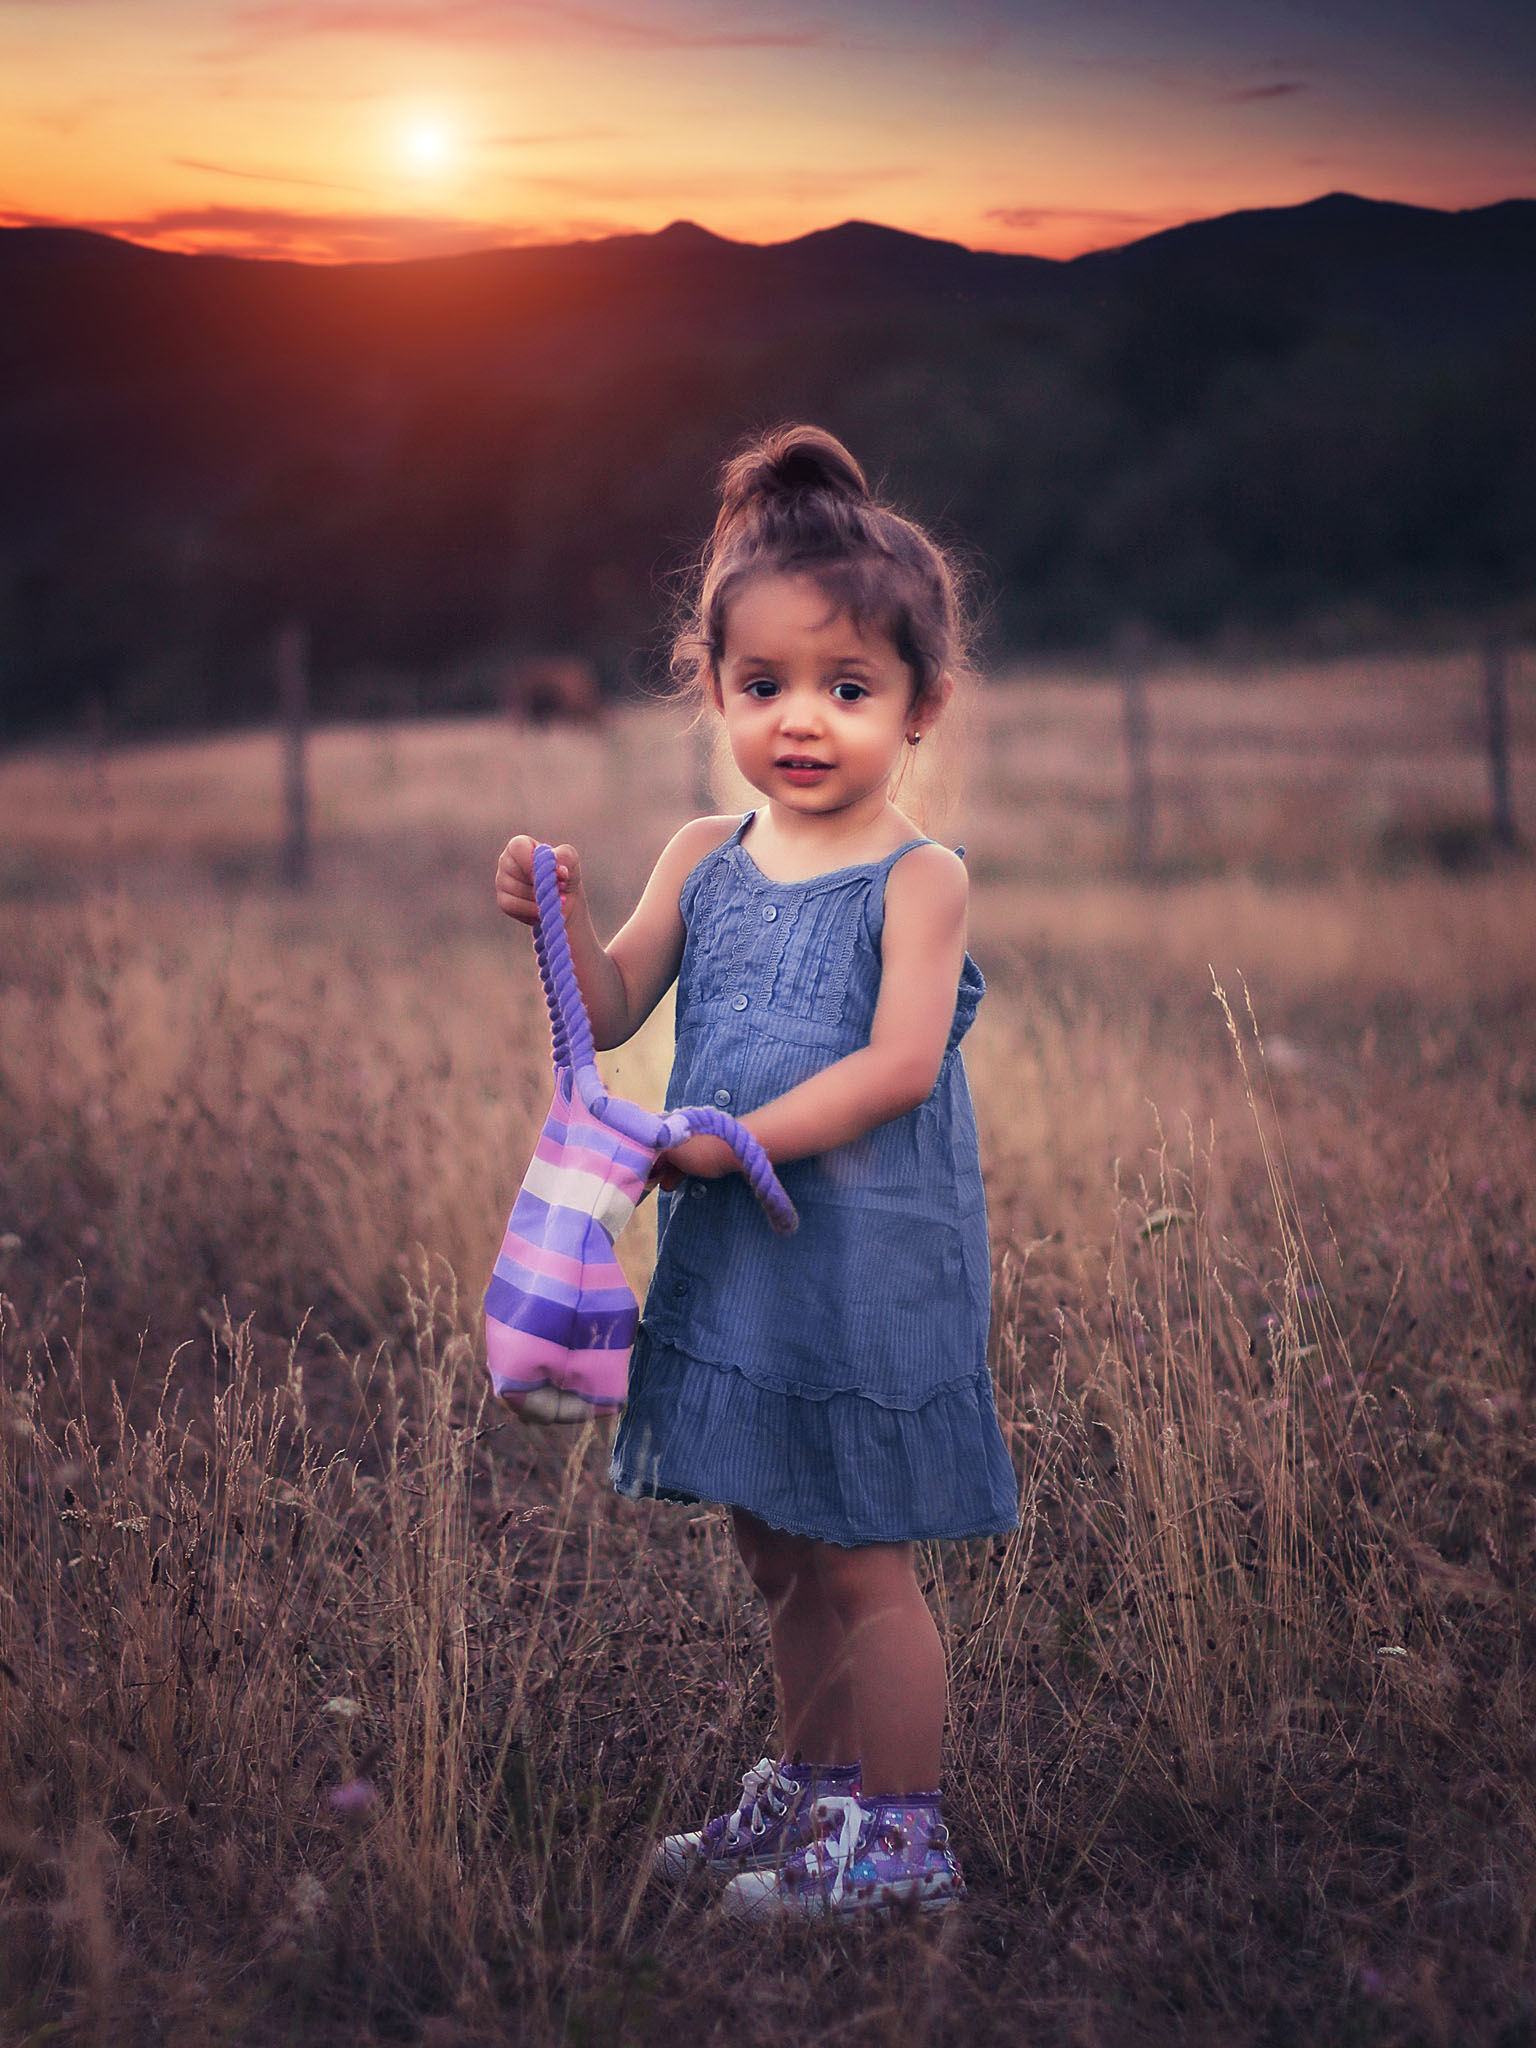 Little Girl With Handbag